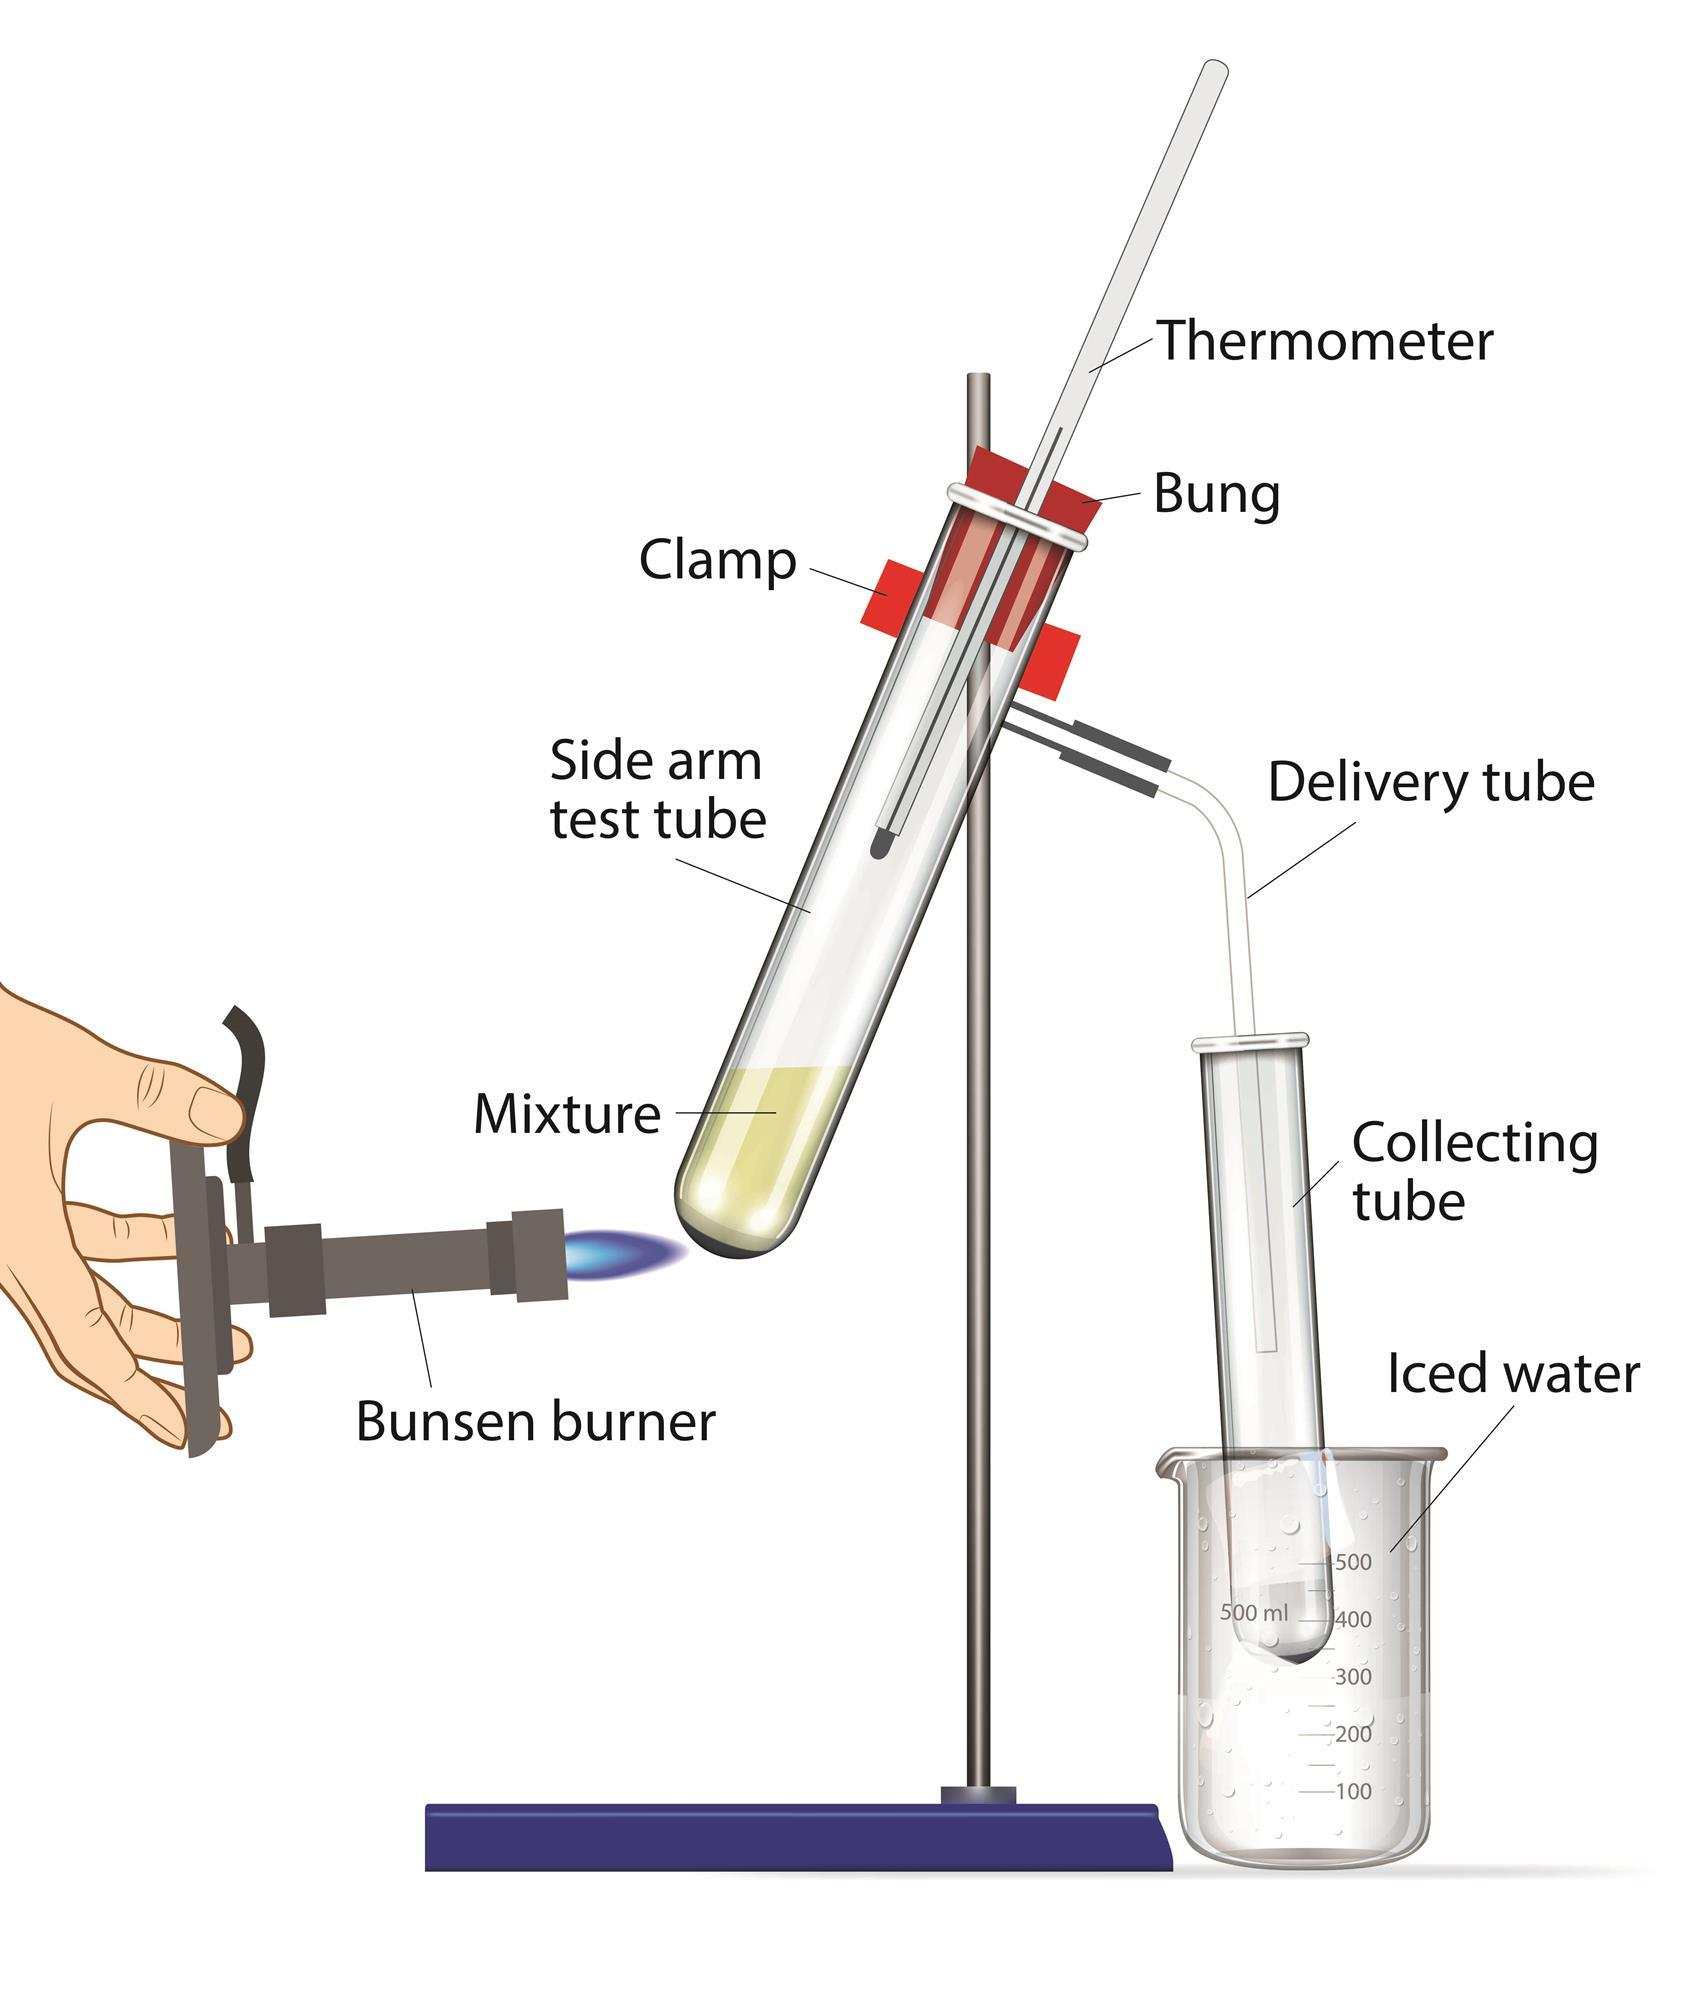 Practical distillation cpd education in chemistry pooptronica Choice Image